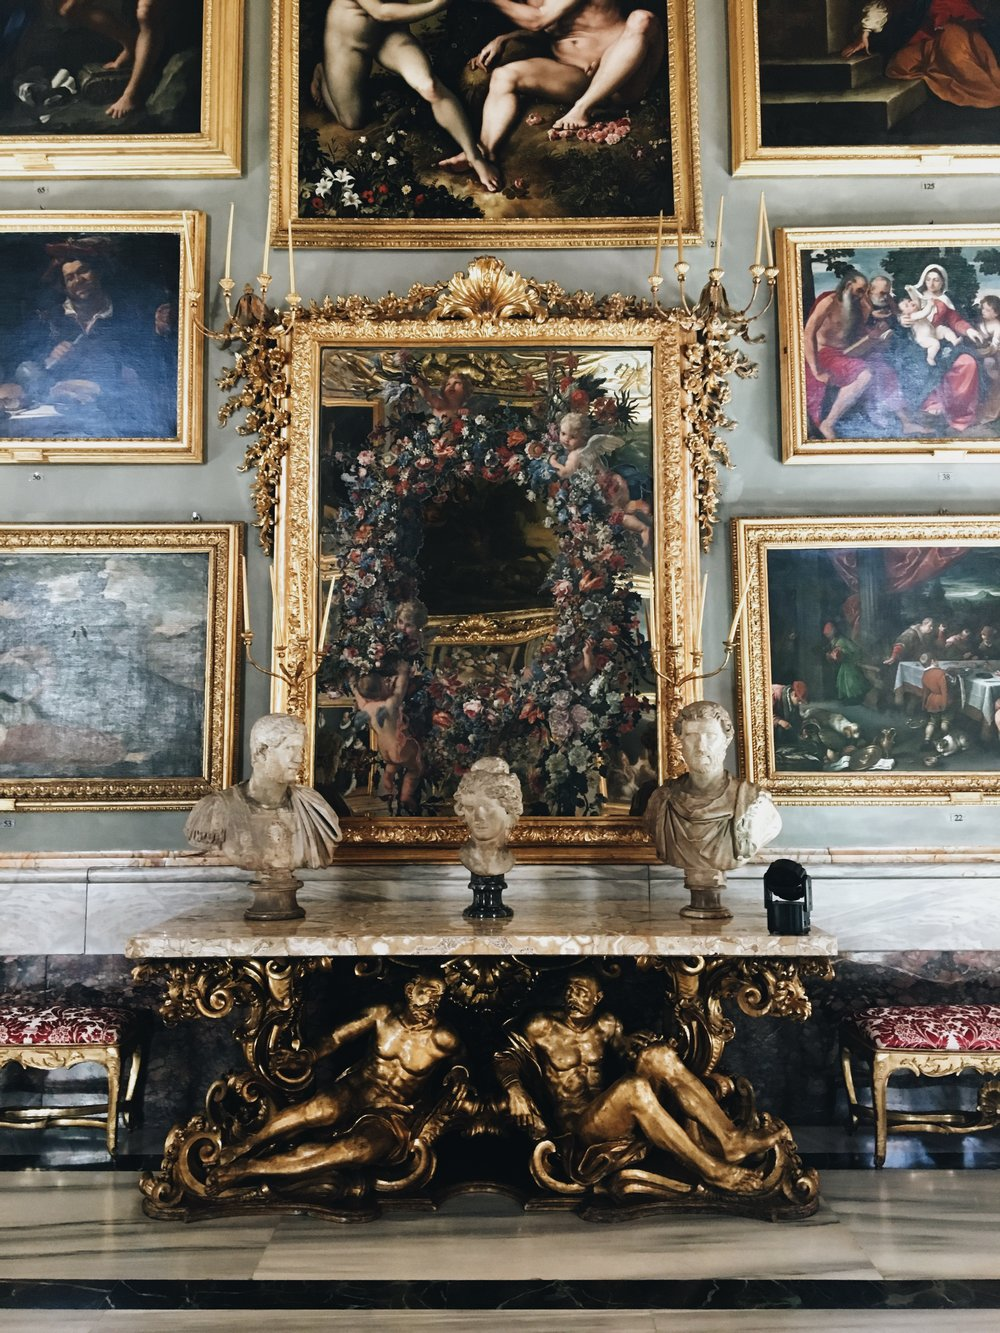 palazzo-colonna-gold-art-vintage-Ashley-O'Neill-How-to-do-rome-in-3-days-weekend-in-rome.jpg